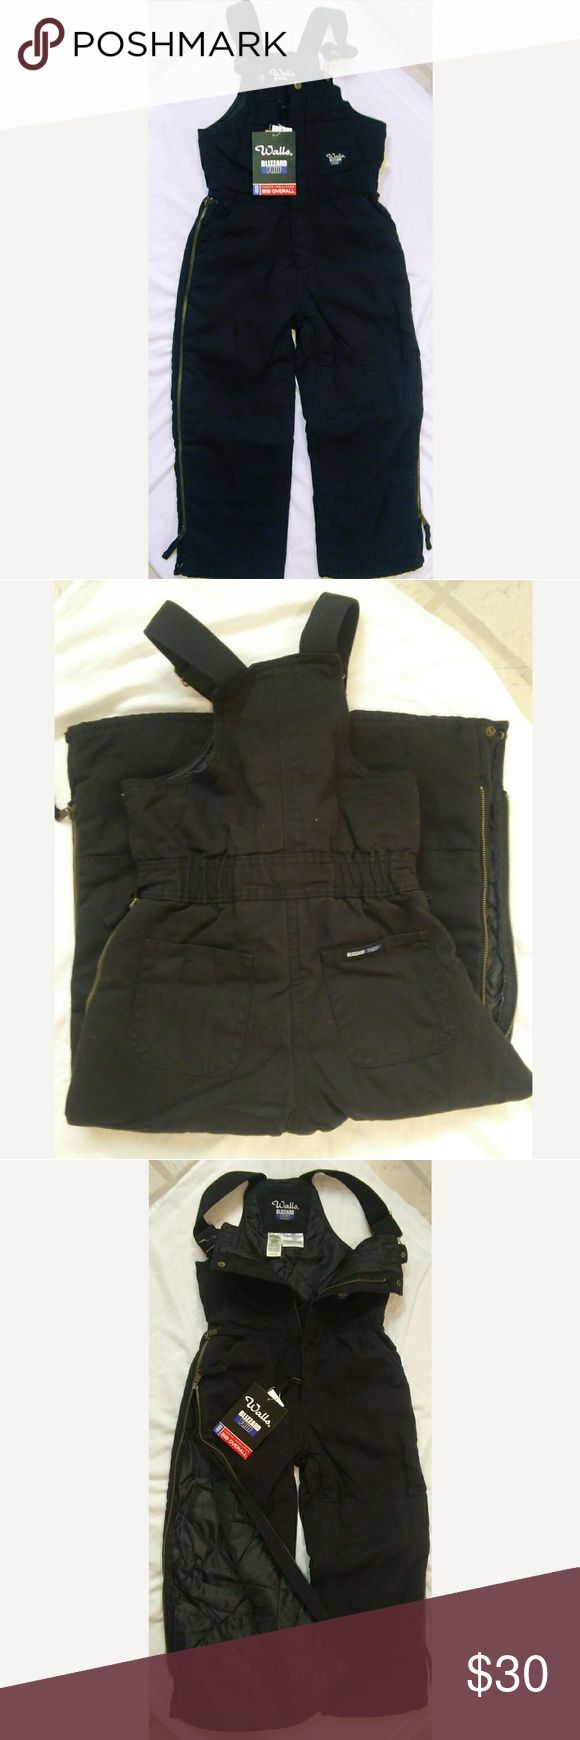 Sz 8/10 Walls BLIZZARD PRUF bib overall Sz 8-10 (m) youth. Brand New black insulated bib overalls. Easy on and off plus machine washable! Walls Other